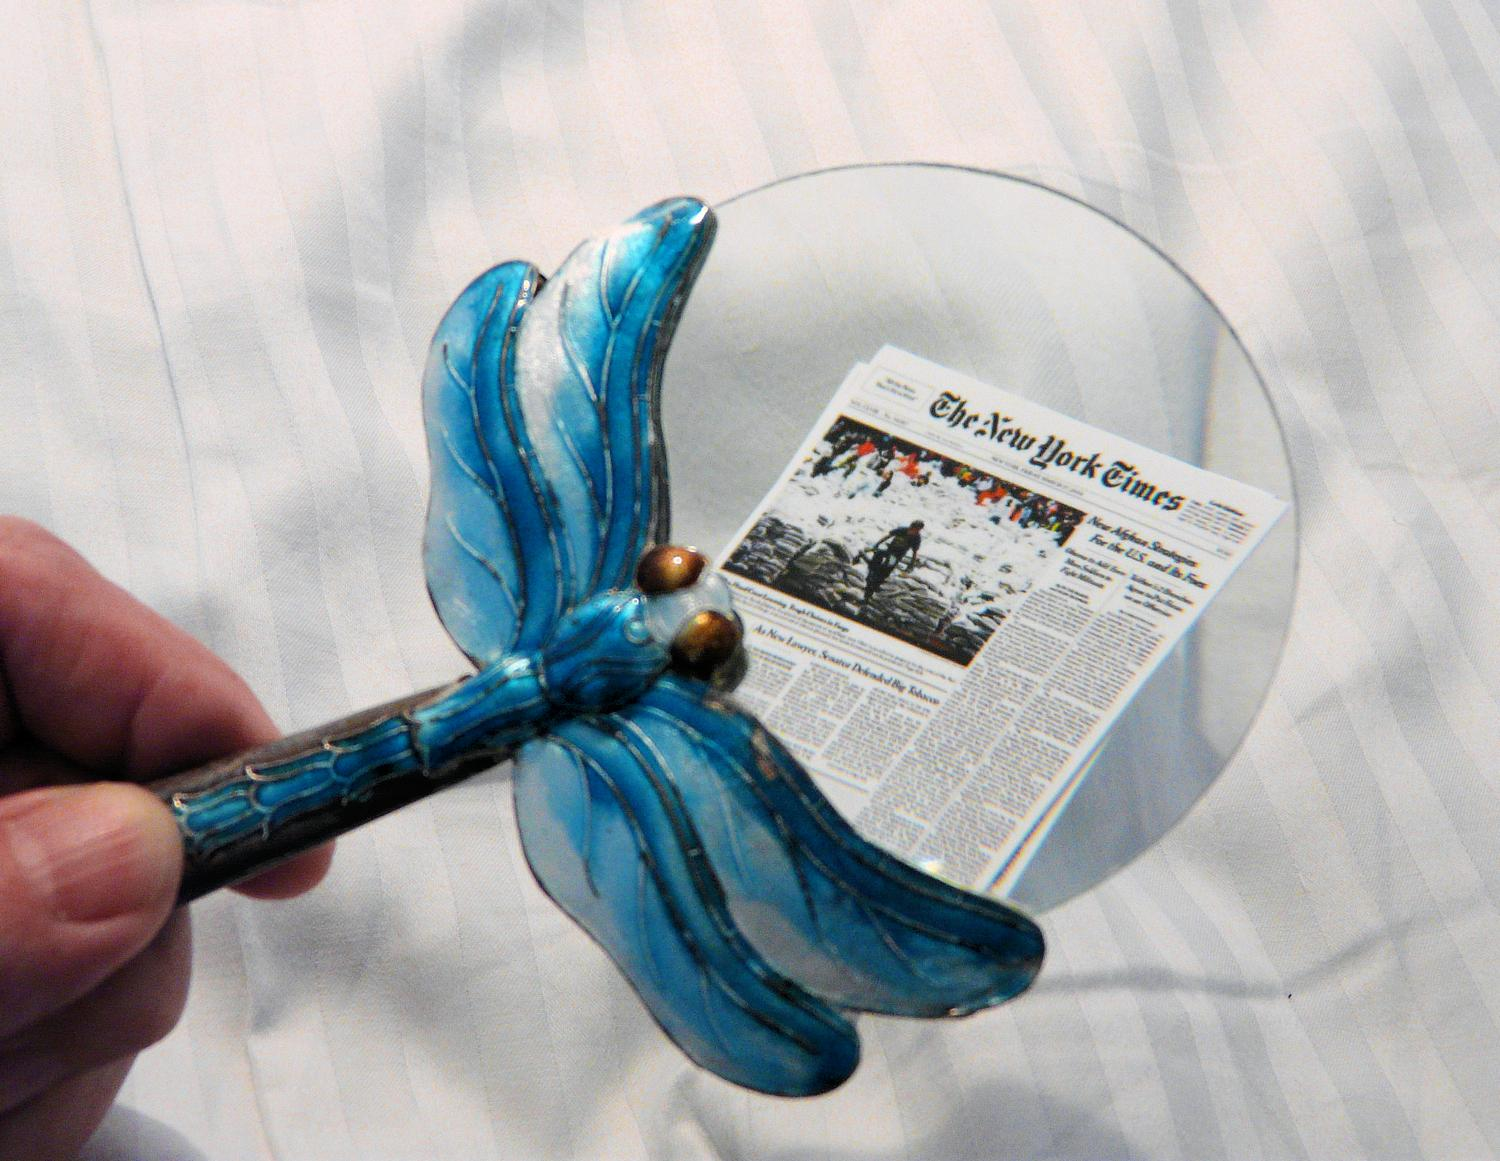 Dragonfly magnifier examining nano edition of the New York Times - Subscribers to the Nano edition will get this